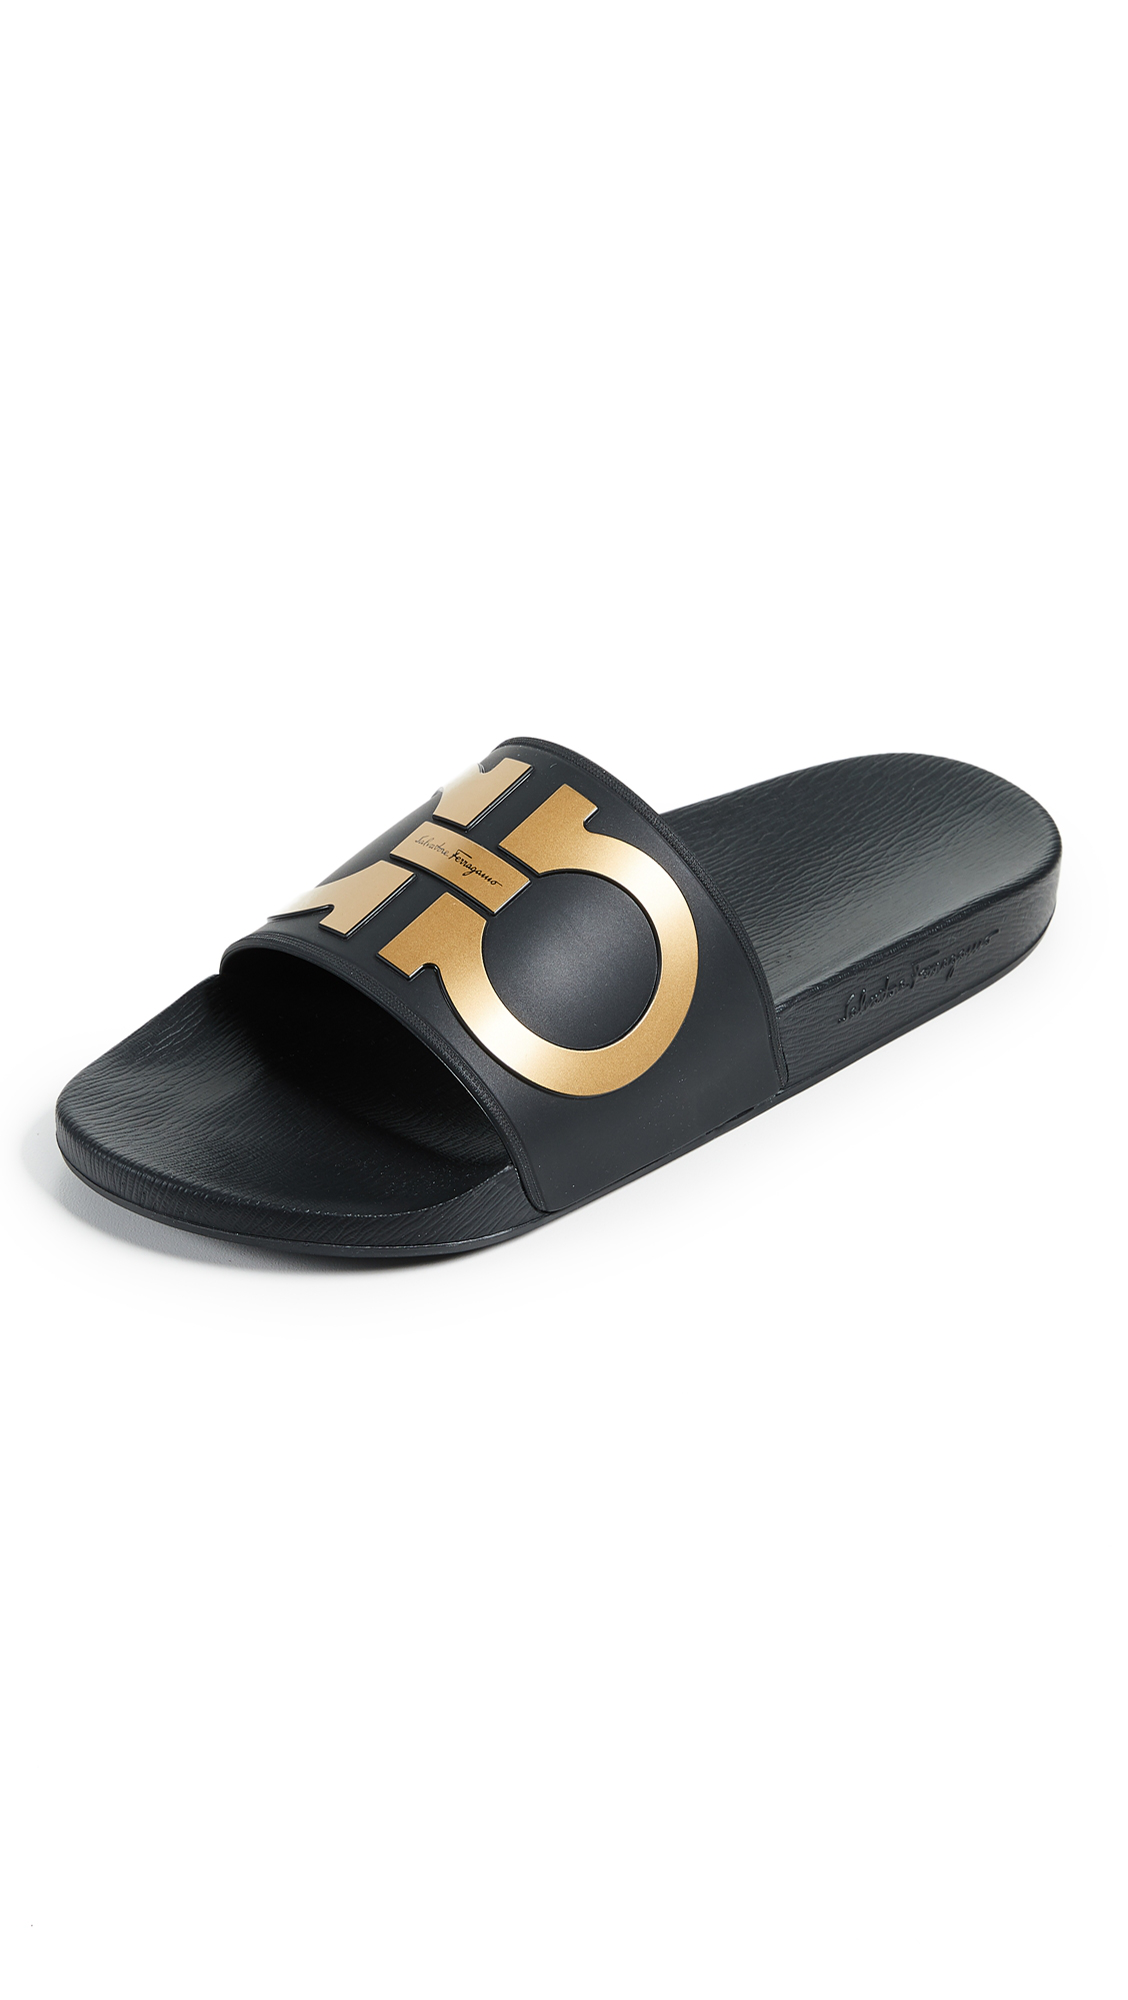 1f7c412a3ed Salvatore Ferragamo Men s Groove 2 Original Double Gancini Slide Sandals In  Black Gold